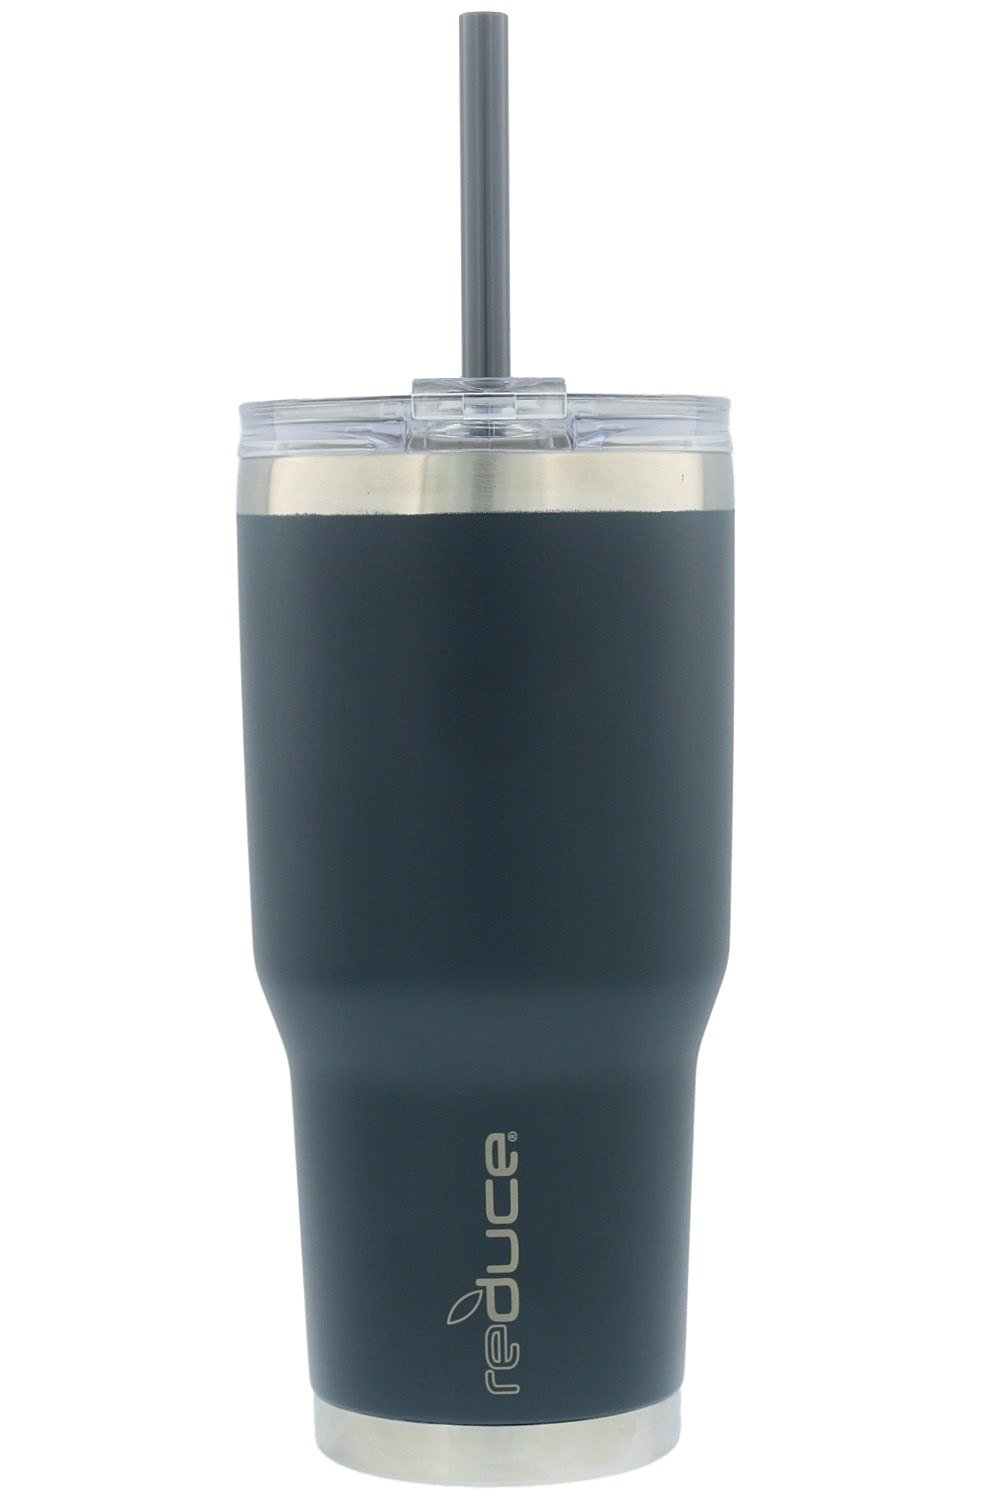 reduce COLD-1 Vacuum Insulated Stainless Steel Tumbler with Straw, 3-in-1 Lid - Tasteless and Odorless, 34oz - Powder Coat (Charcoal)